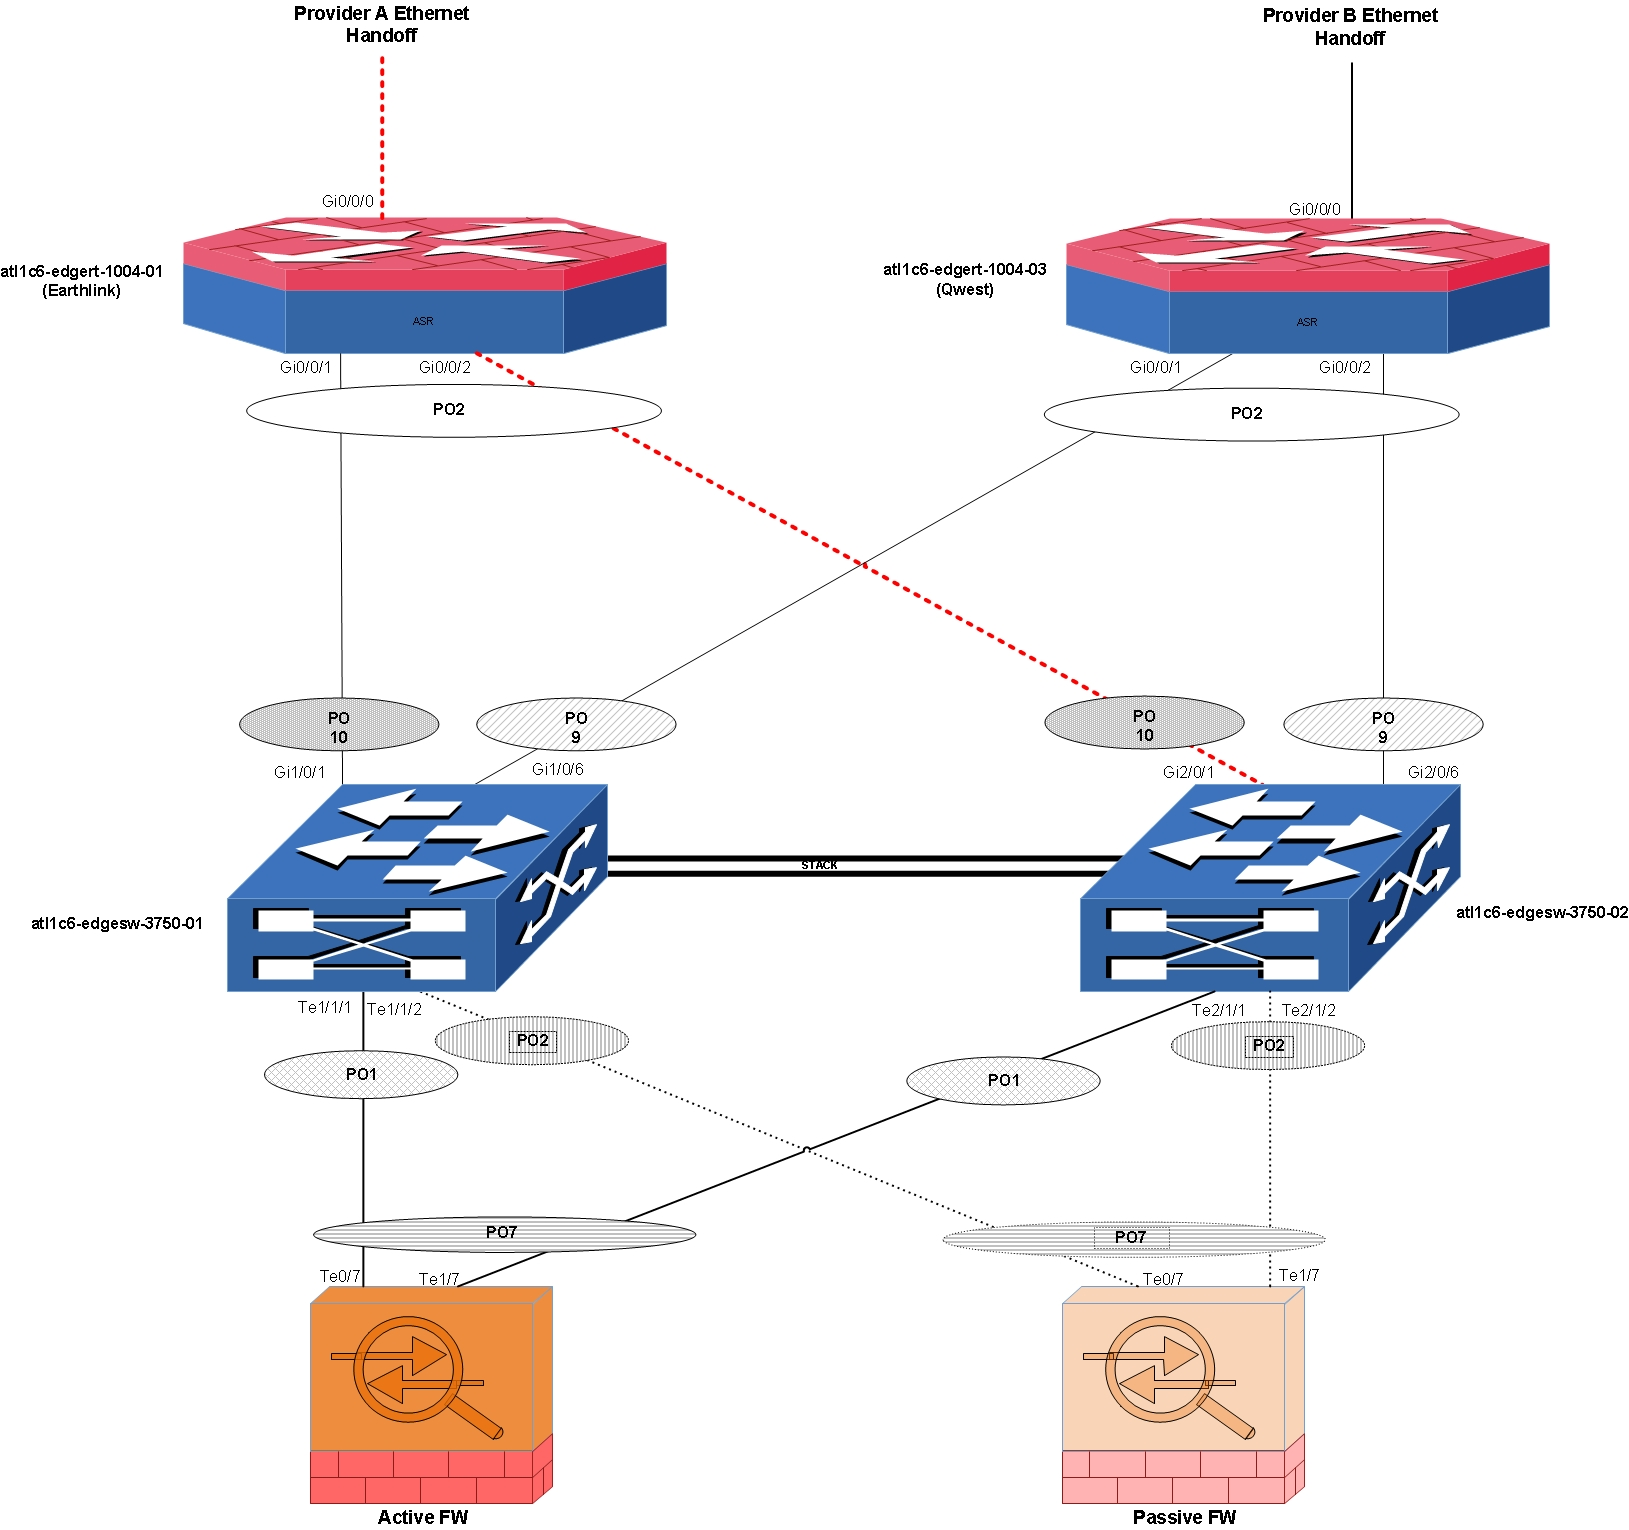 Cisco 3750X unusual output - Cisco Community